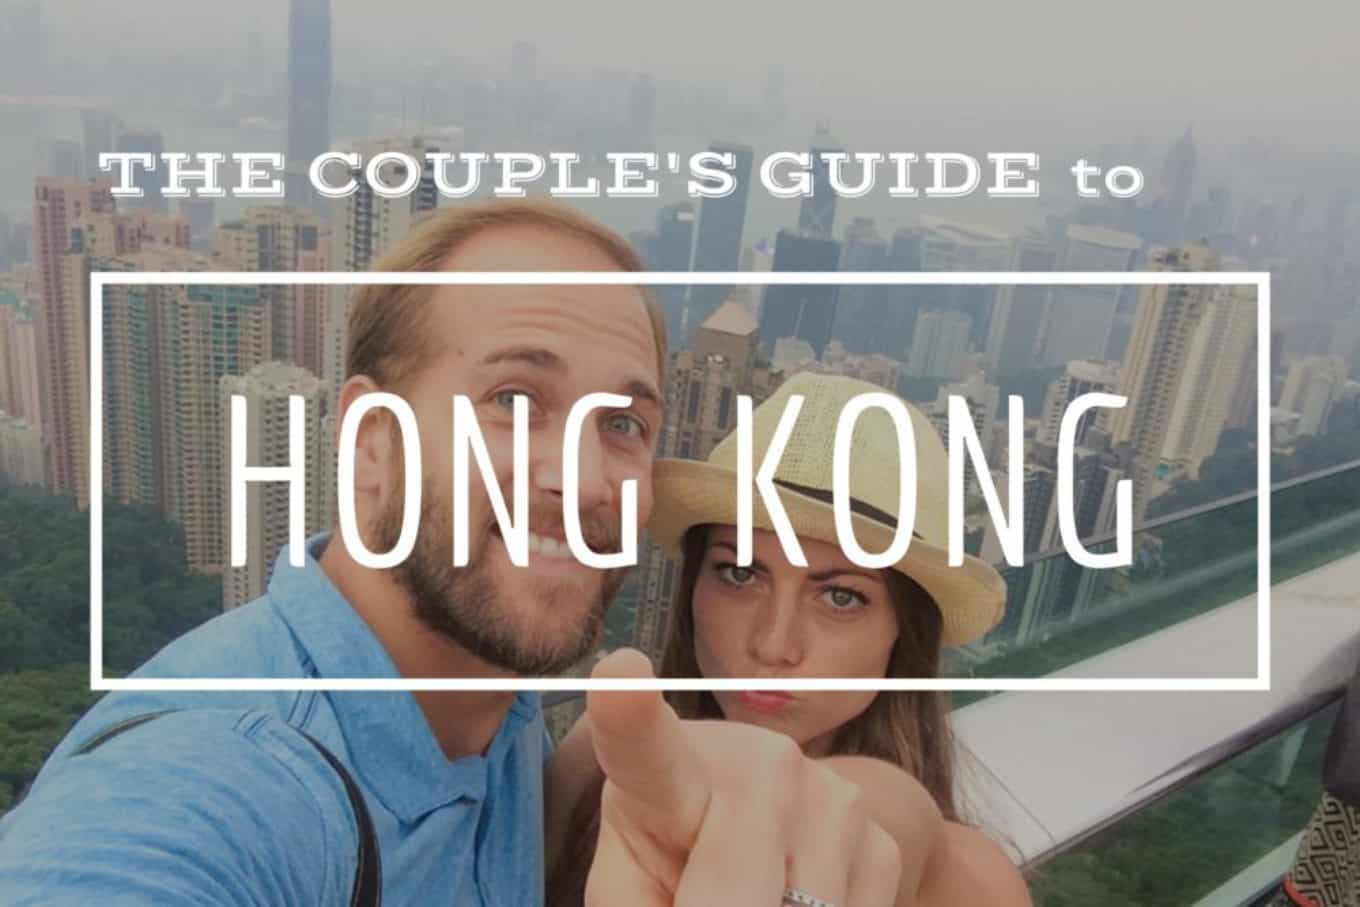 The couples guide to hong kong and what to do in hong kong